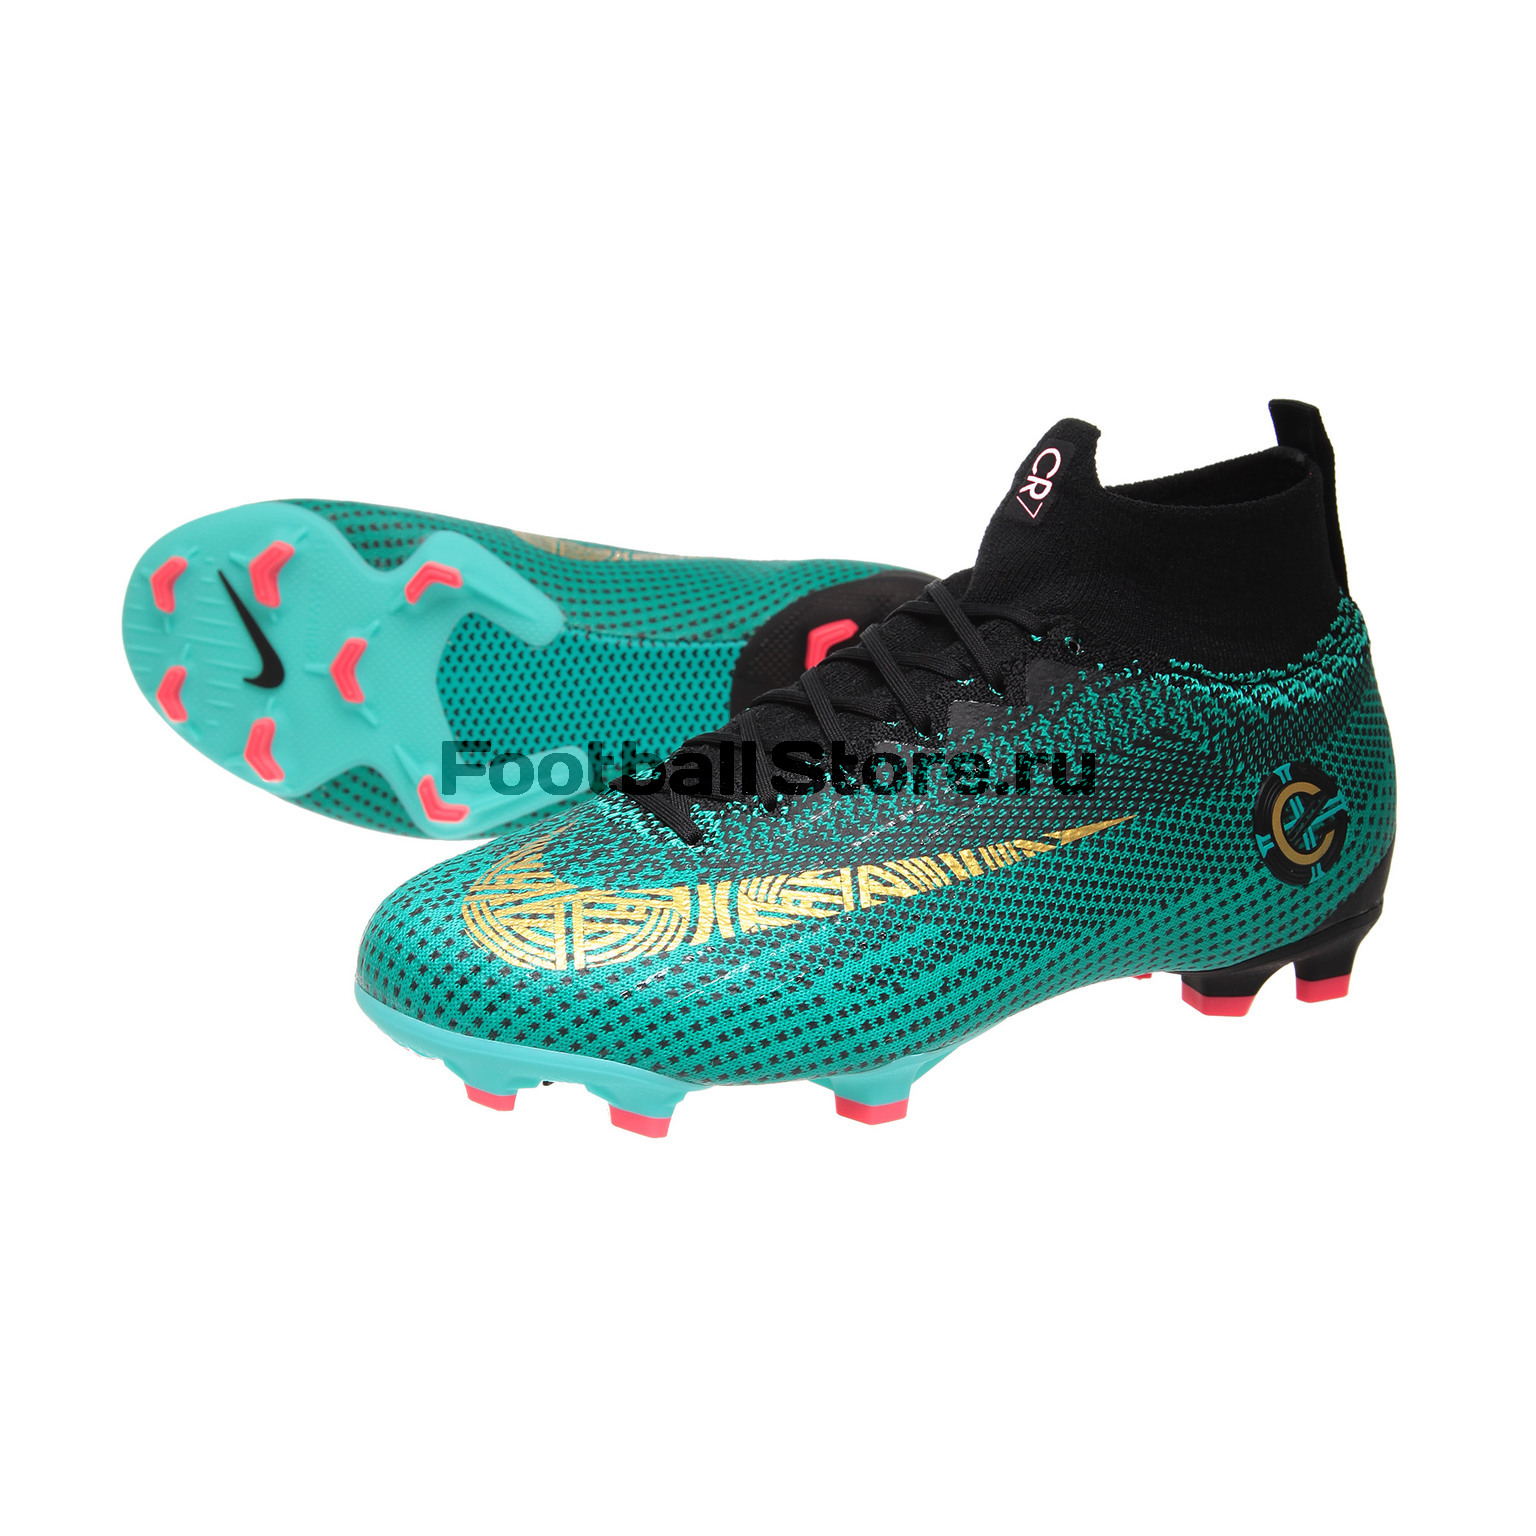 Бутсы Nike Superfly 6 Elite CR7 JR FG AJ3086-390 детские бутсы nike бутсы nike jr phantom 3 elite df fg ah7292 081